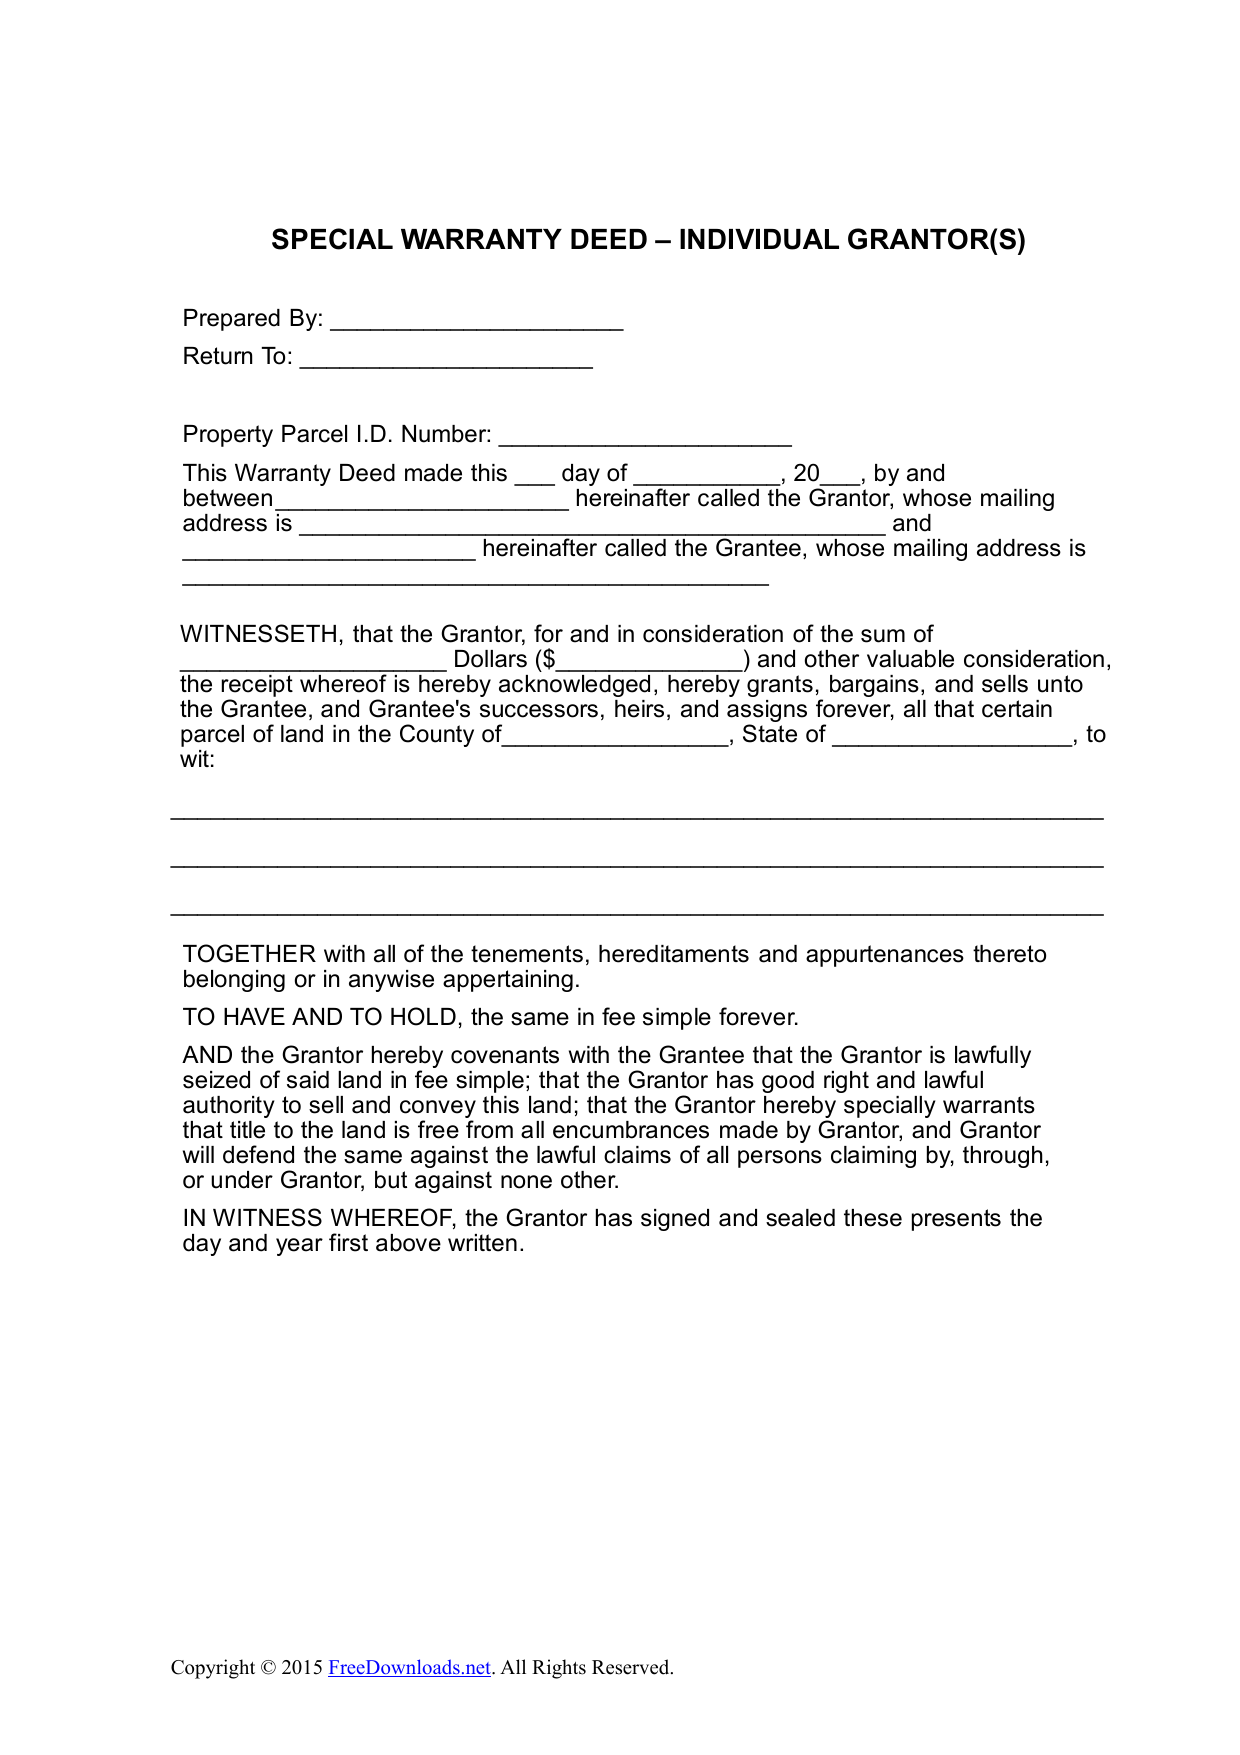 Special Warranty Deed Form